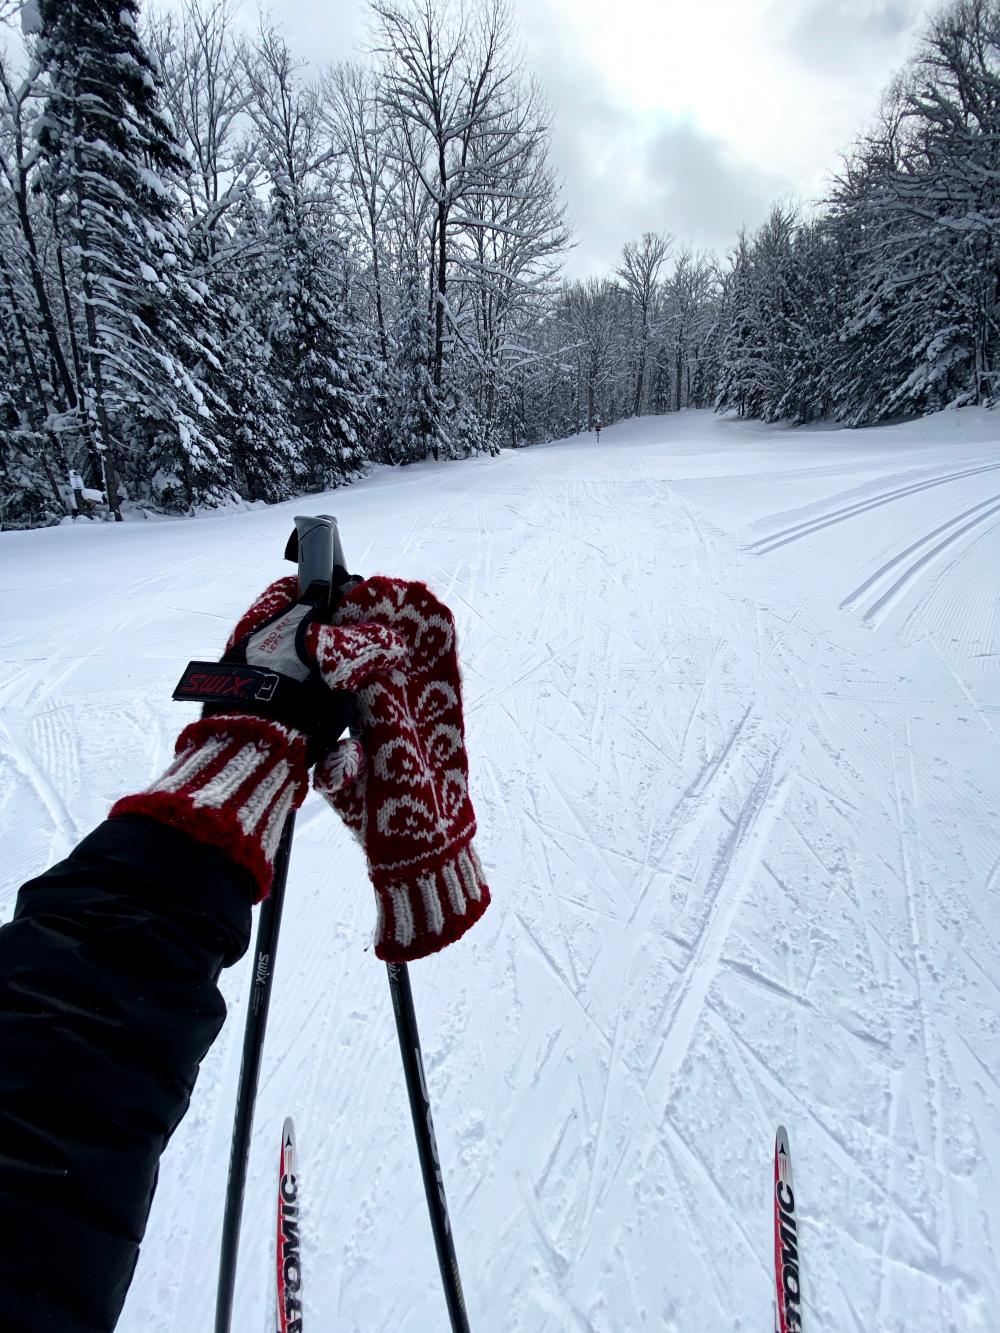 View of cross-country ski trail in winter.